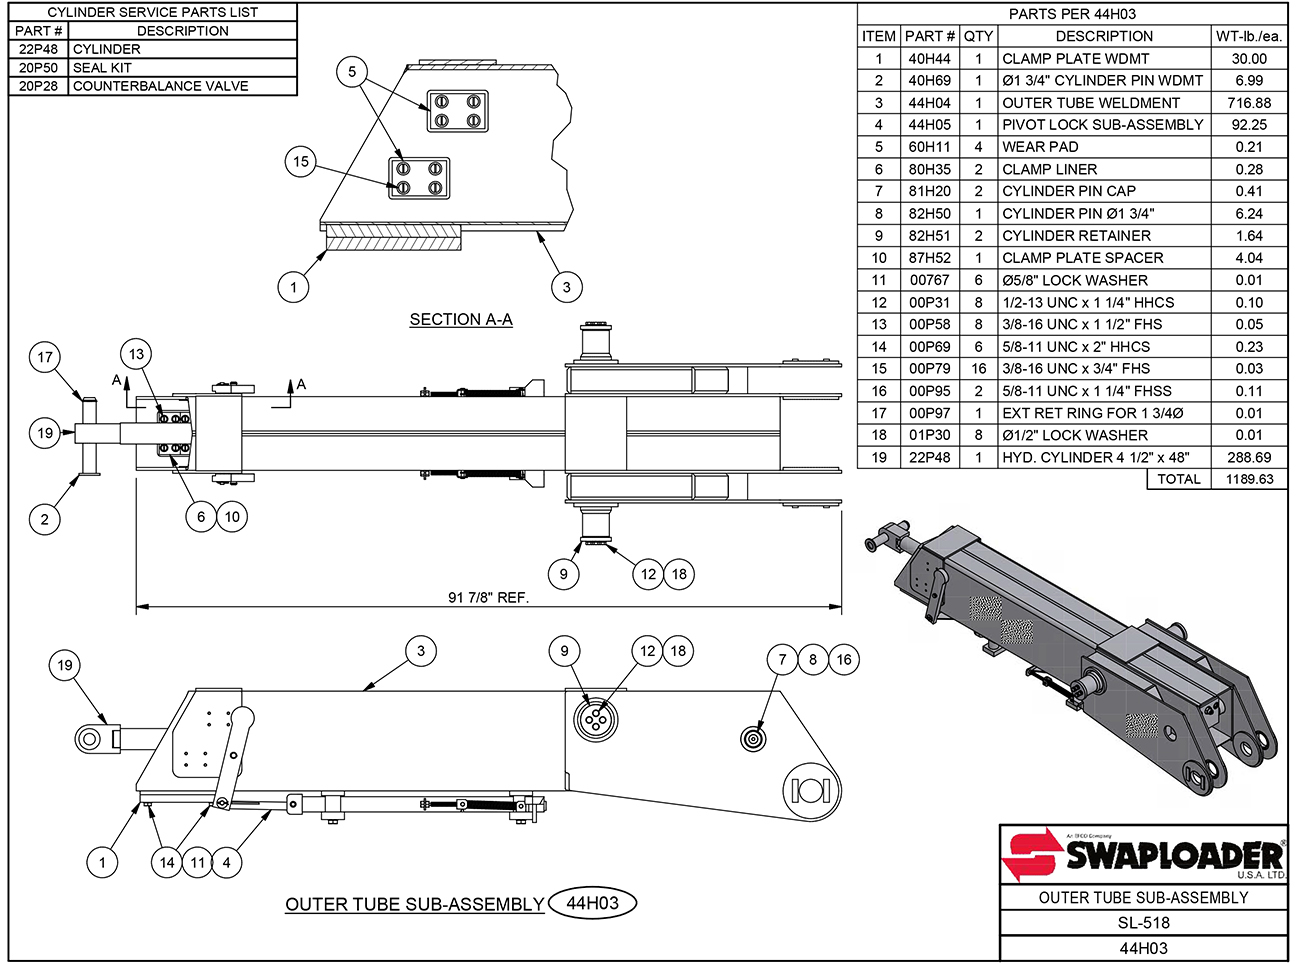 SL-518 Outer Tube Sub-Assembly Diagram